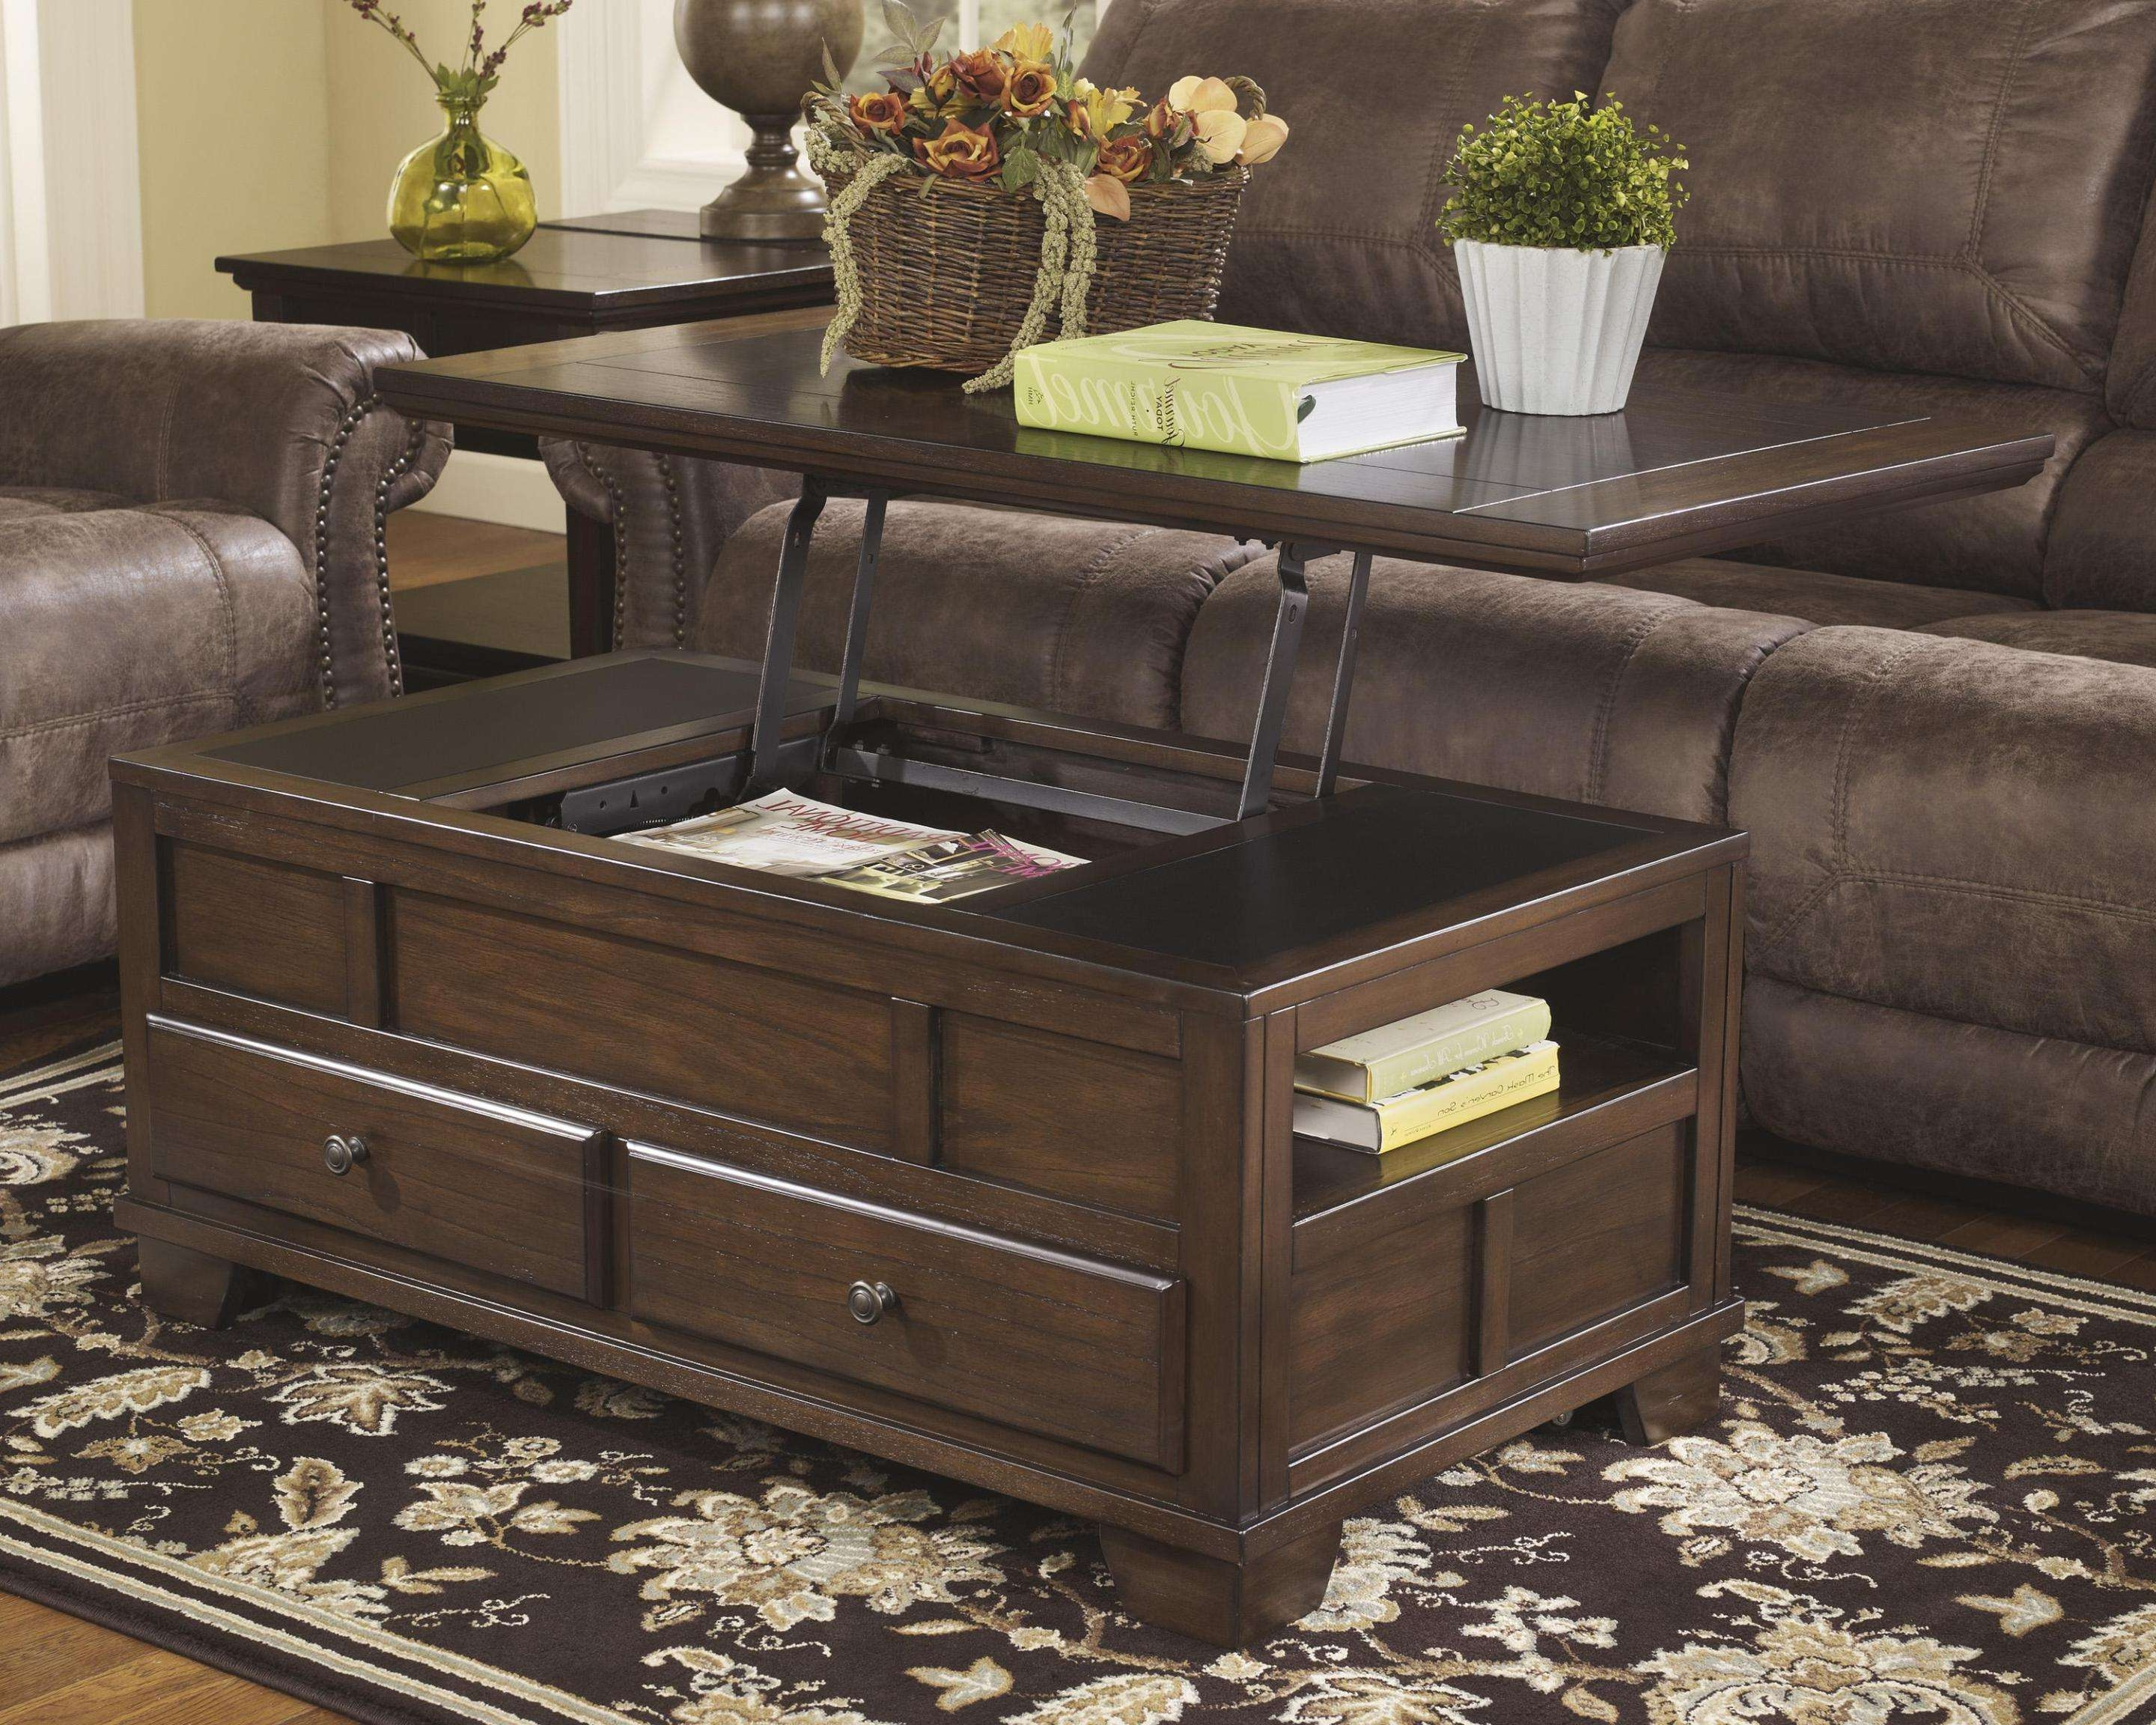 Coffee Tables : Coffee Table Coaster Lift Top Oak With Drawer For Current Low Coffee Tables With Drawers (View 3 of 20)